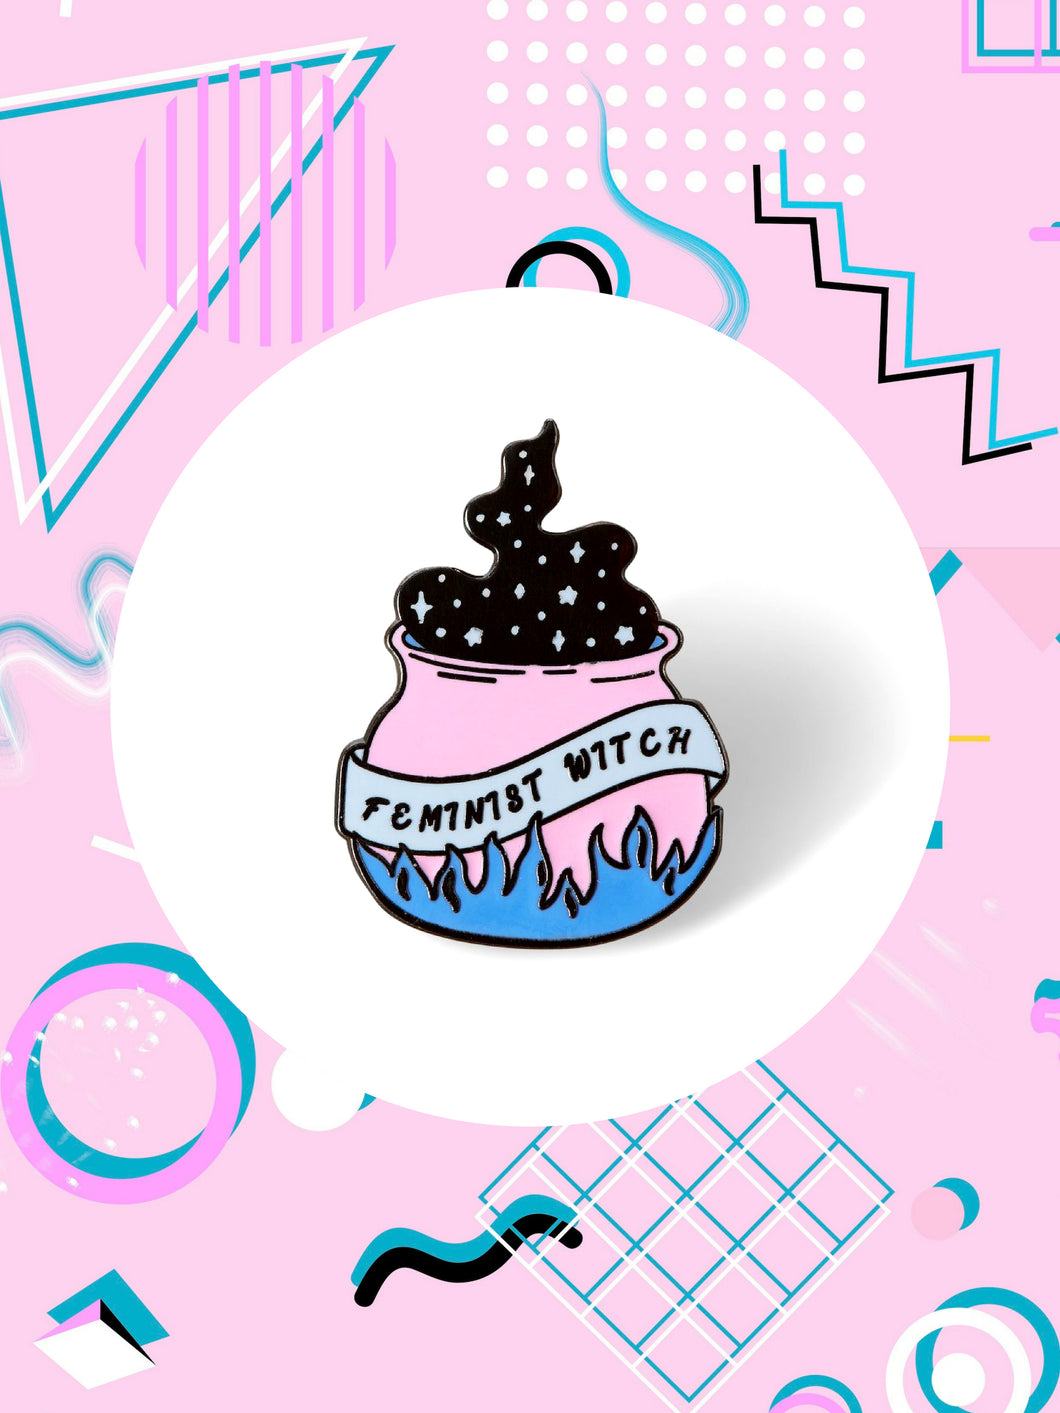 enamel pin shaped like a cauldron that says, feminist witch